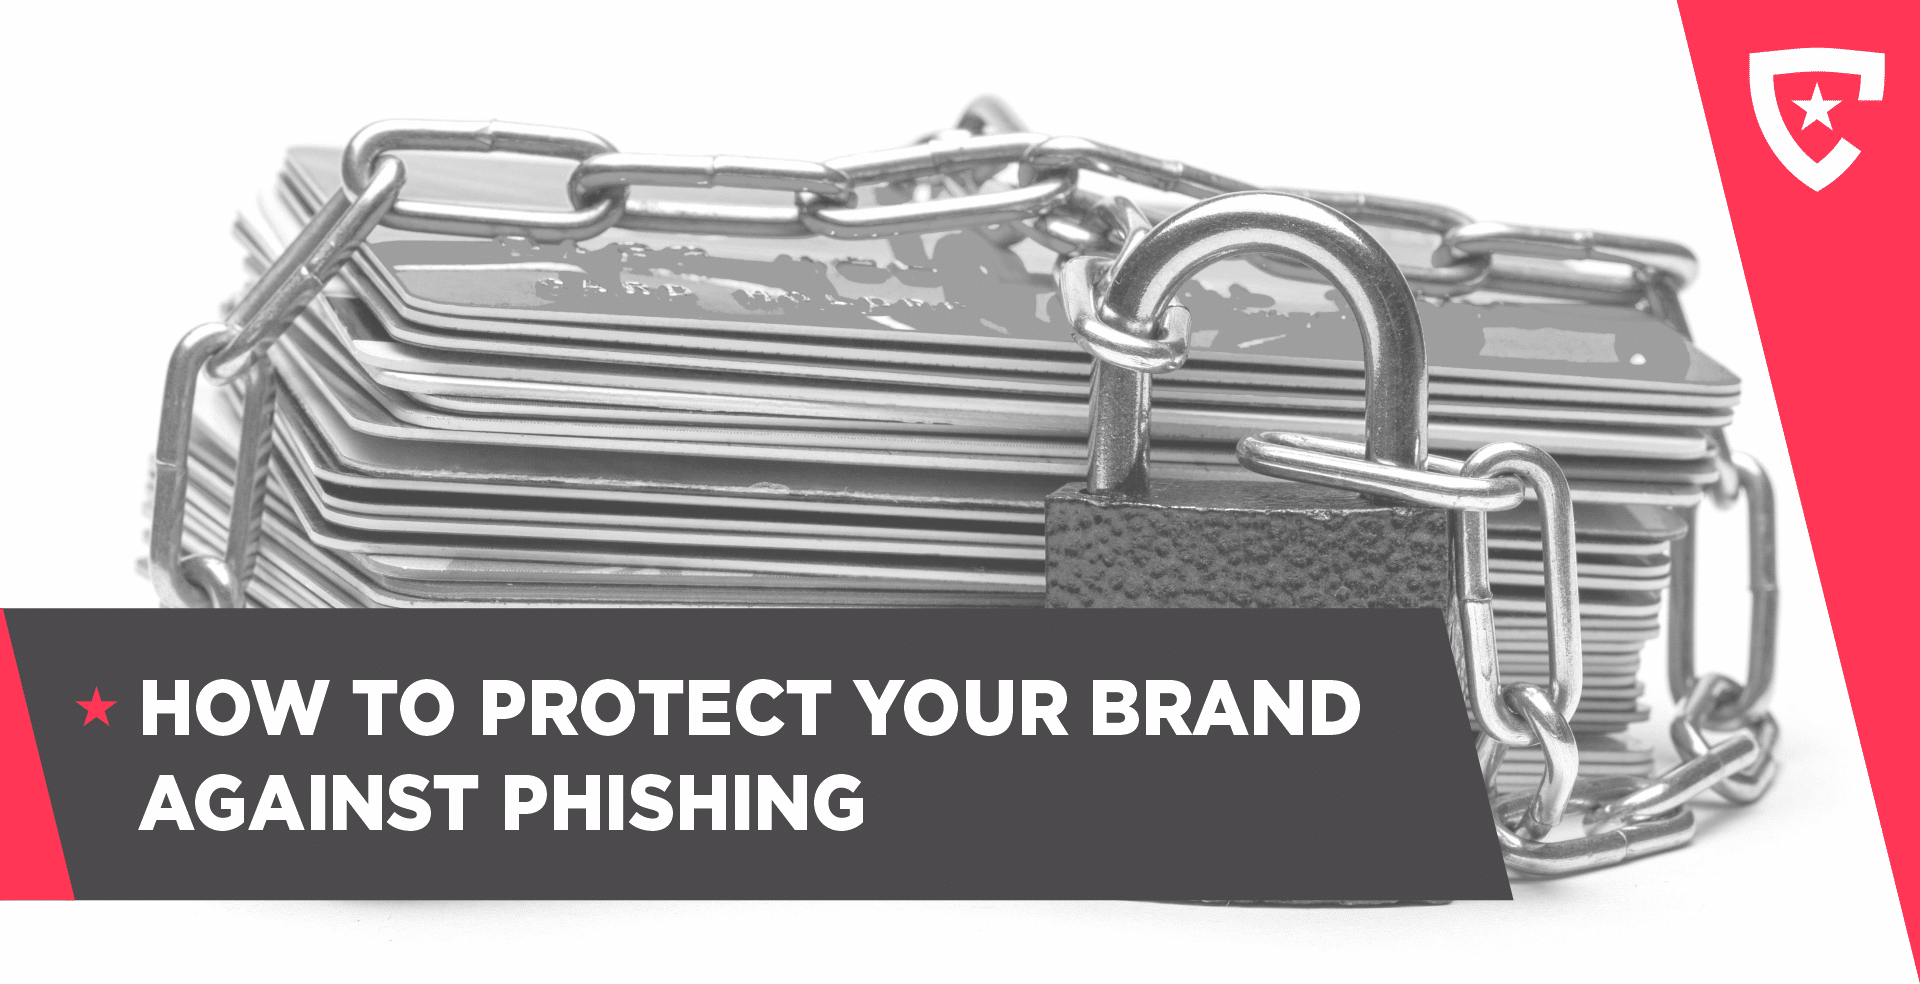 How to Protect Your Brand Against Phishing